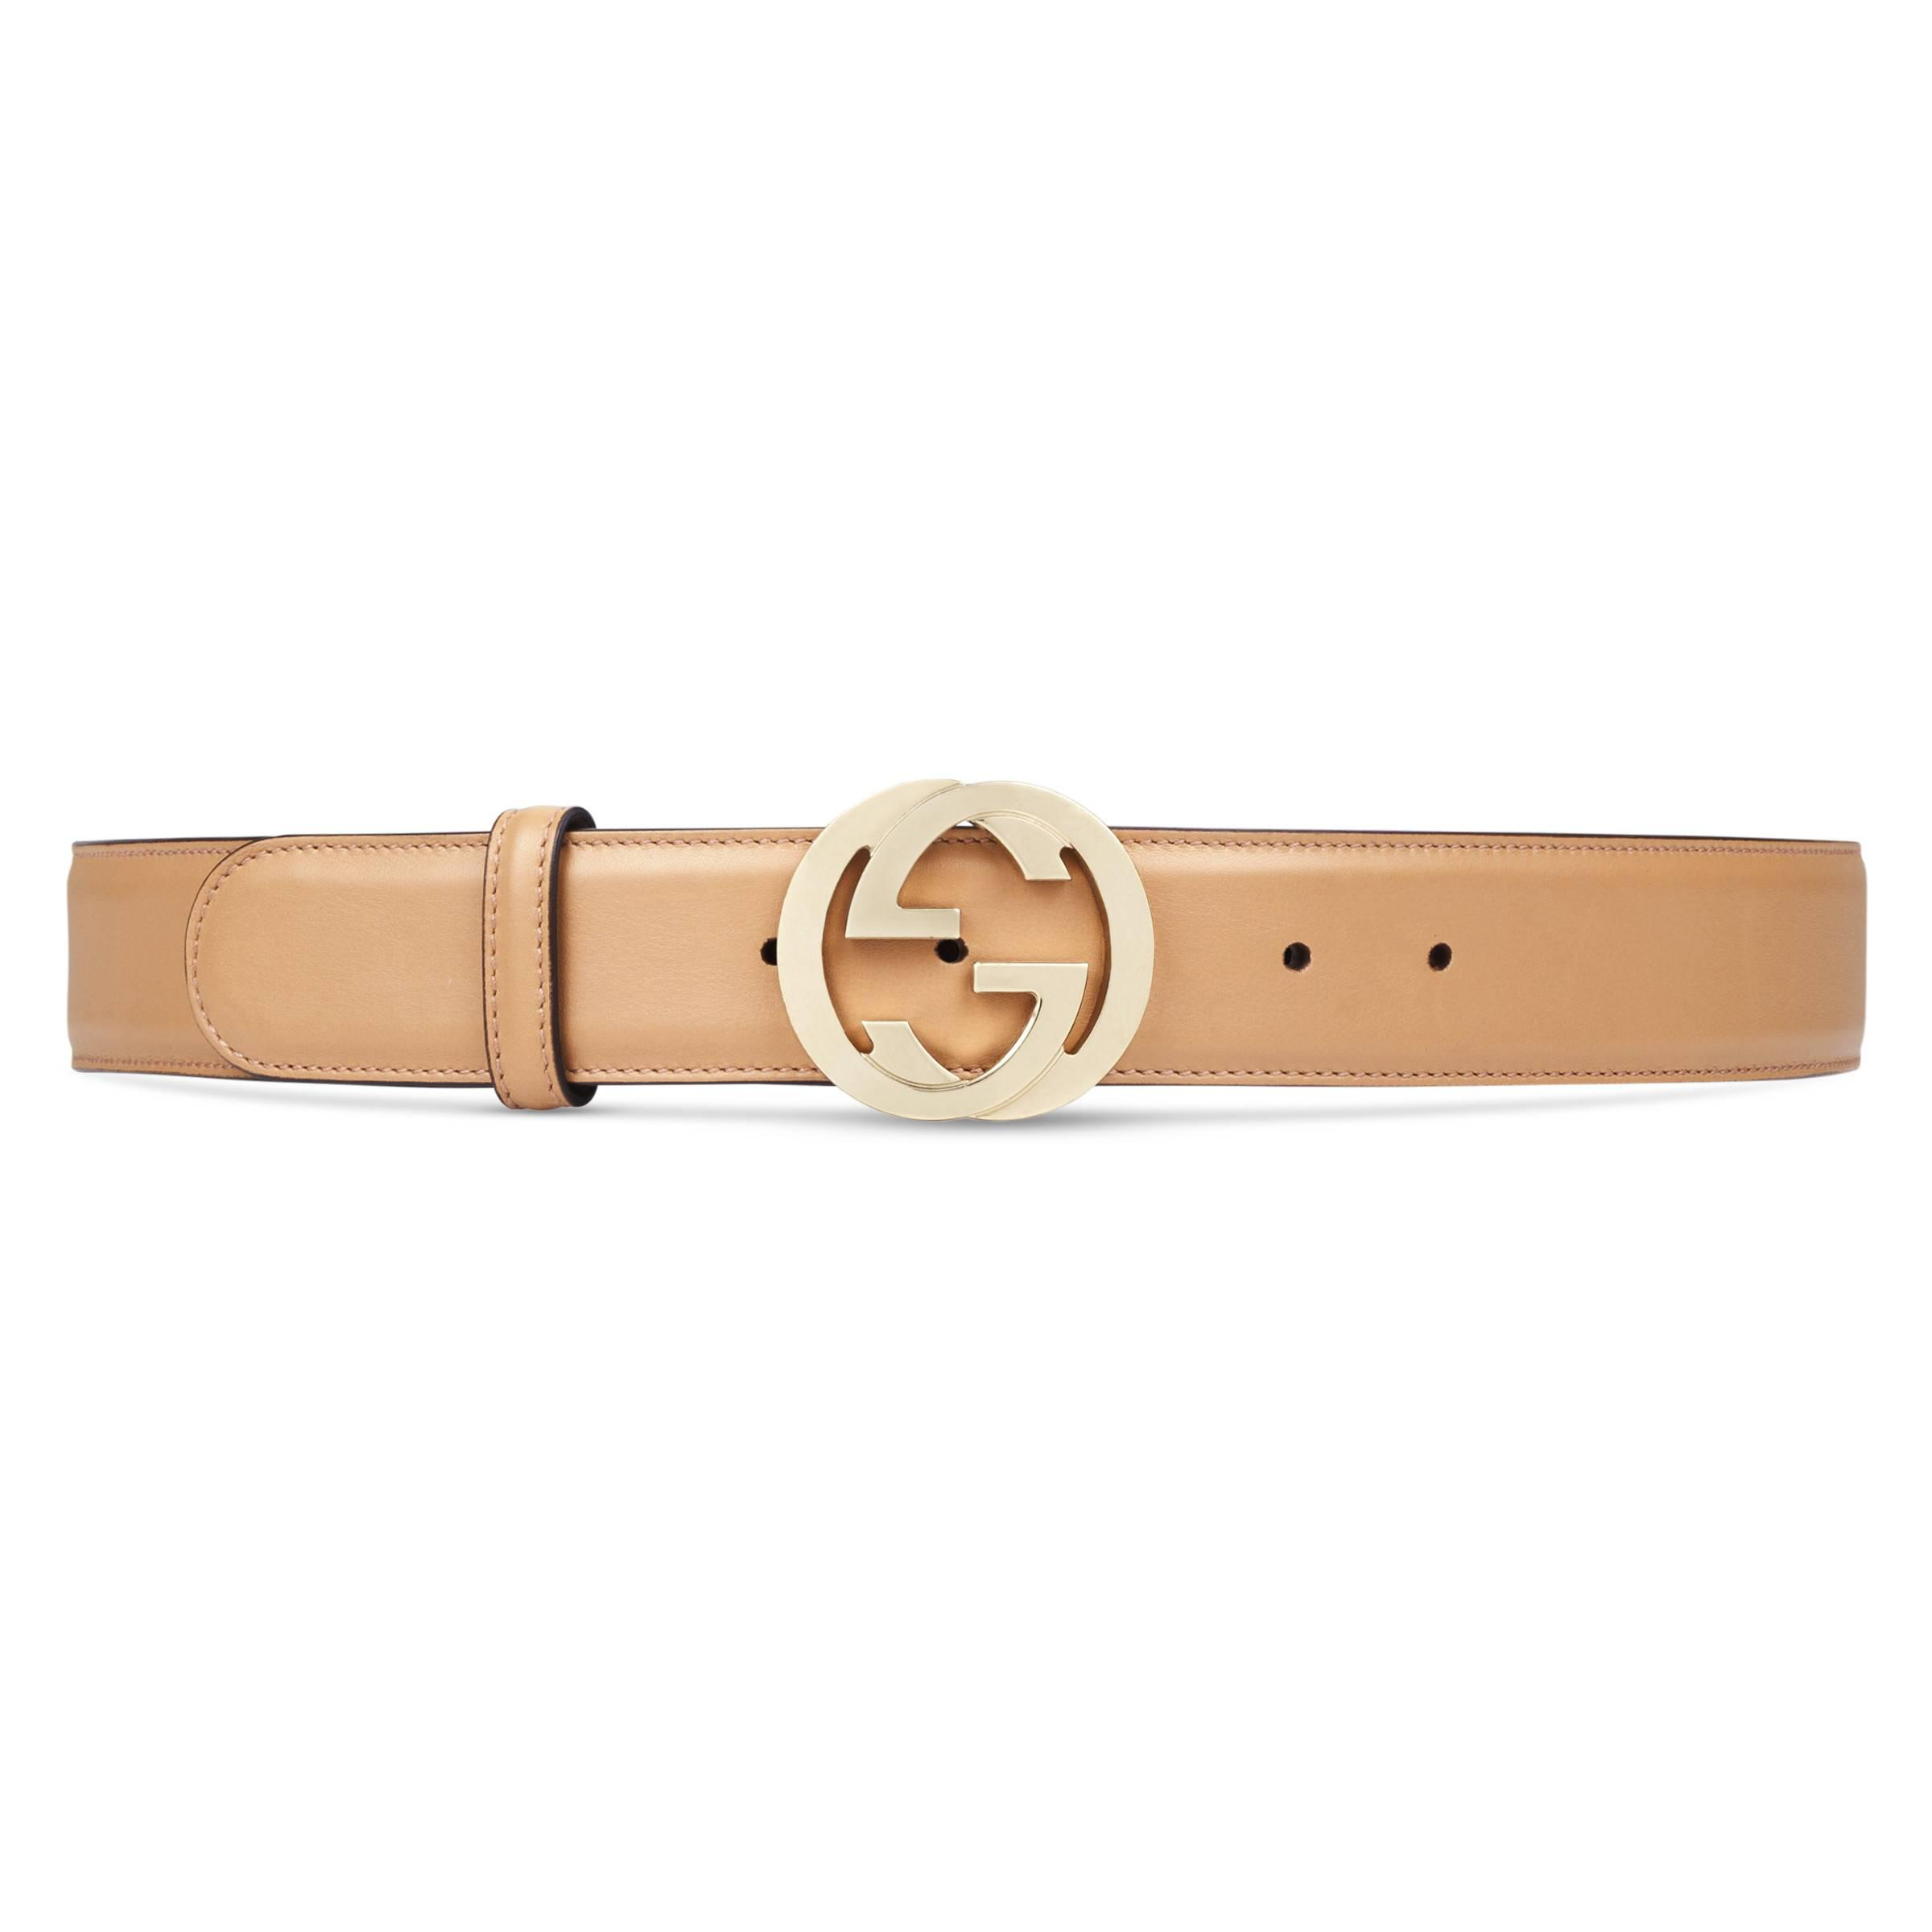 273ab06e141 Gucci Leather Belt With Interlocking G Buckle in Natural - Save 35 ...